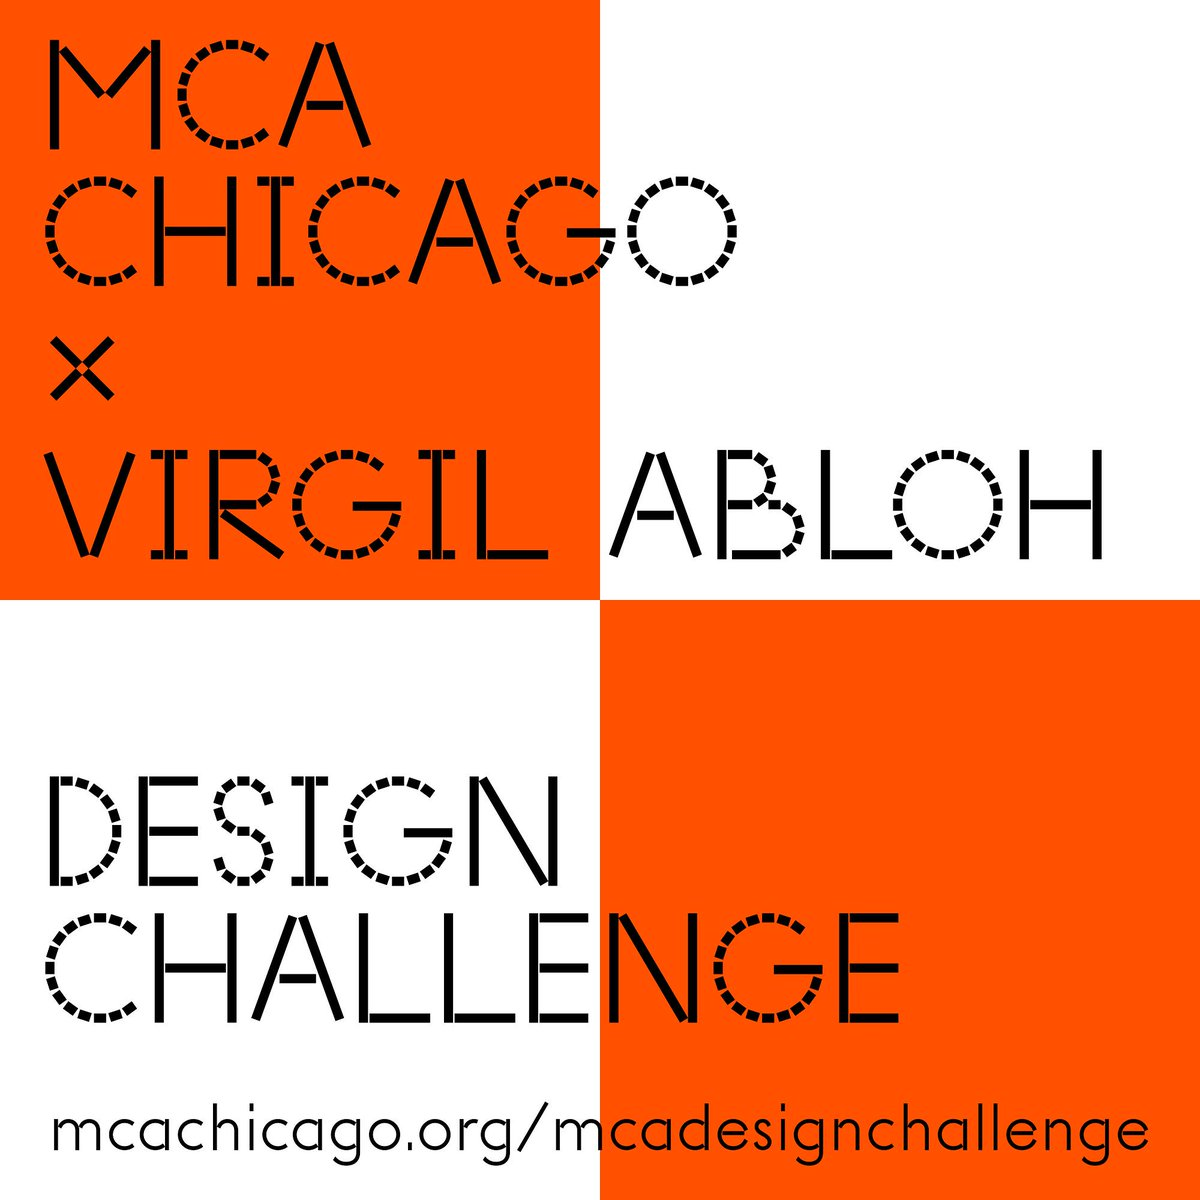 MCA Chicago on Twitter: